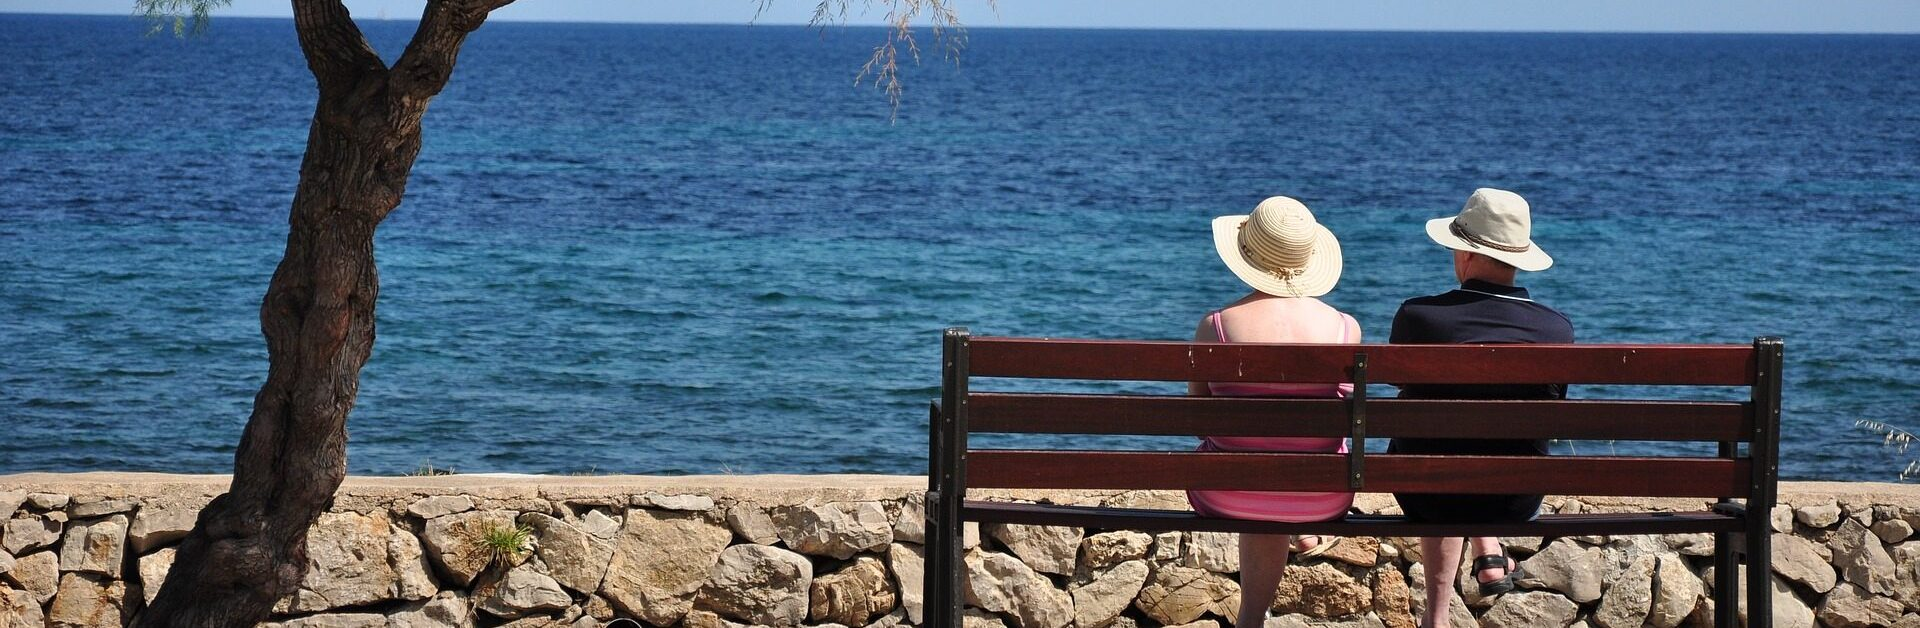 An elderly couple sat on a bench facing the sea, enjoying the view.